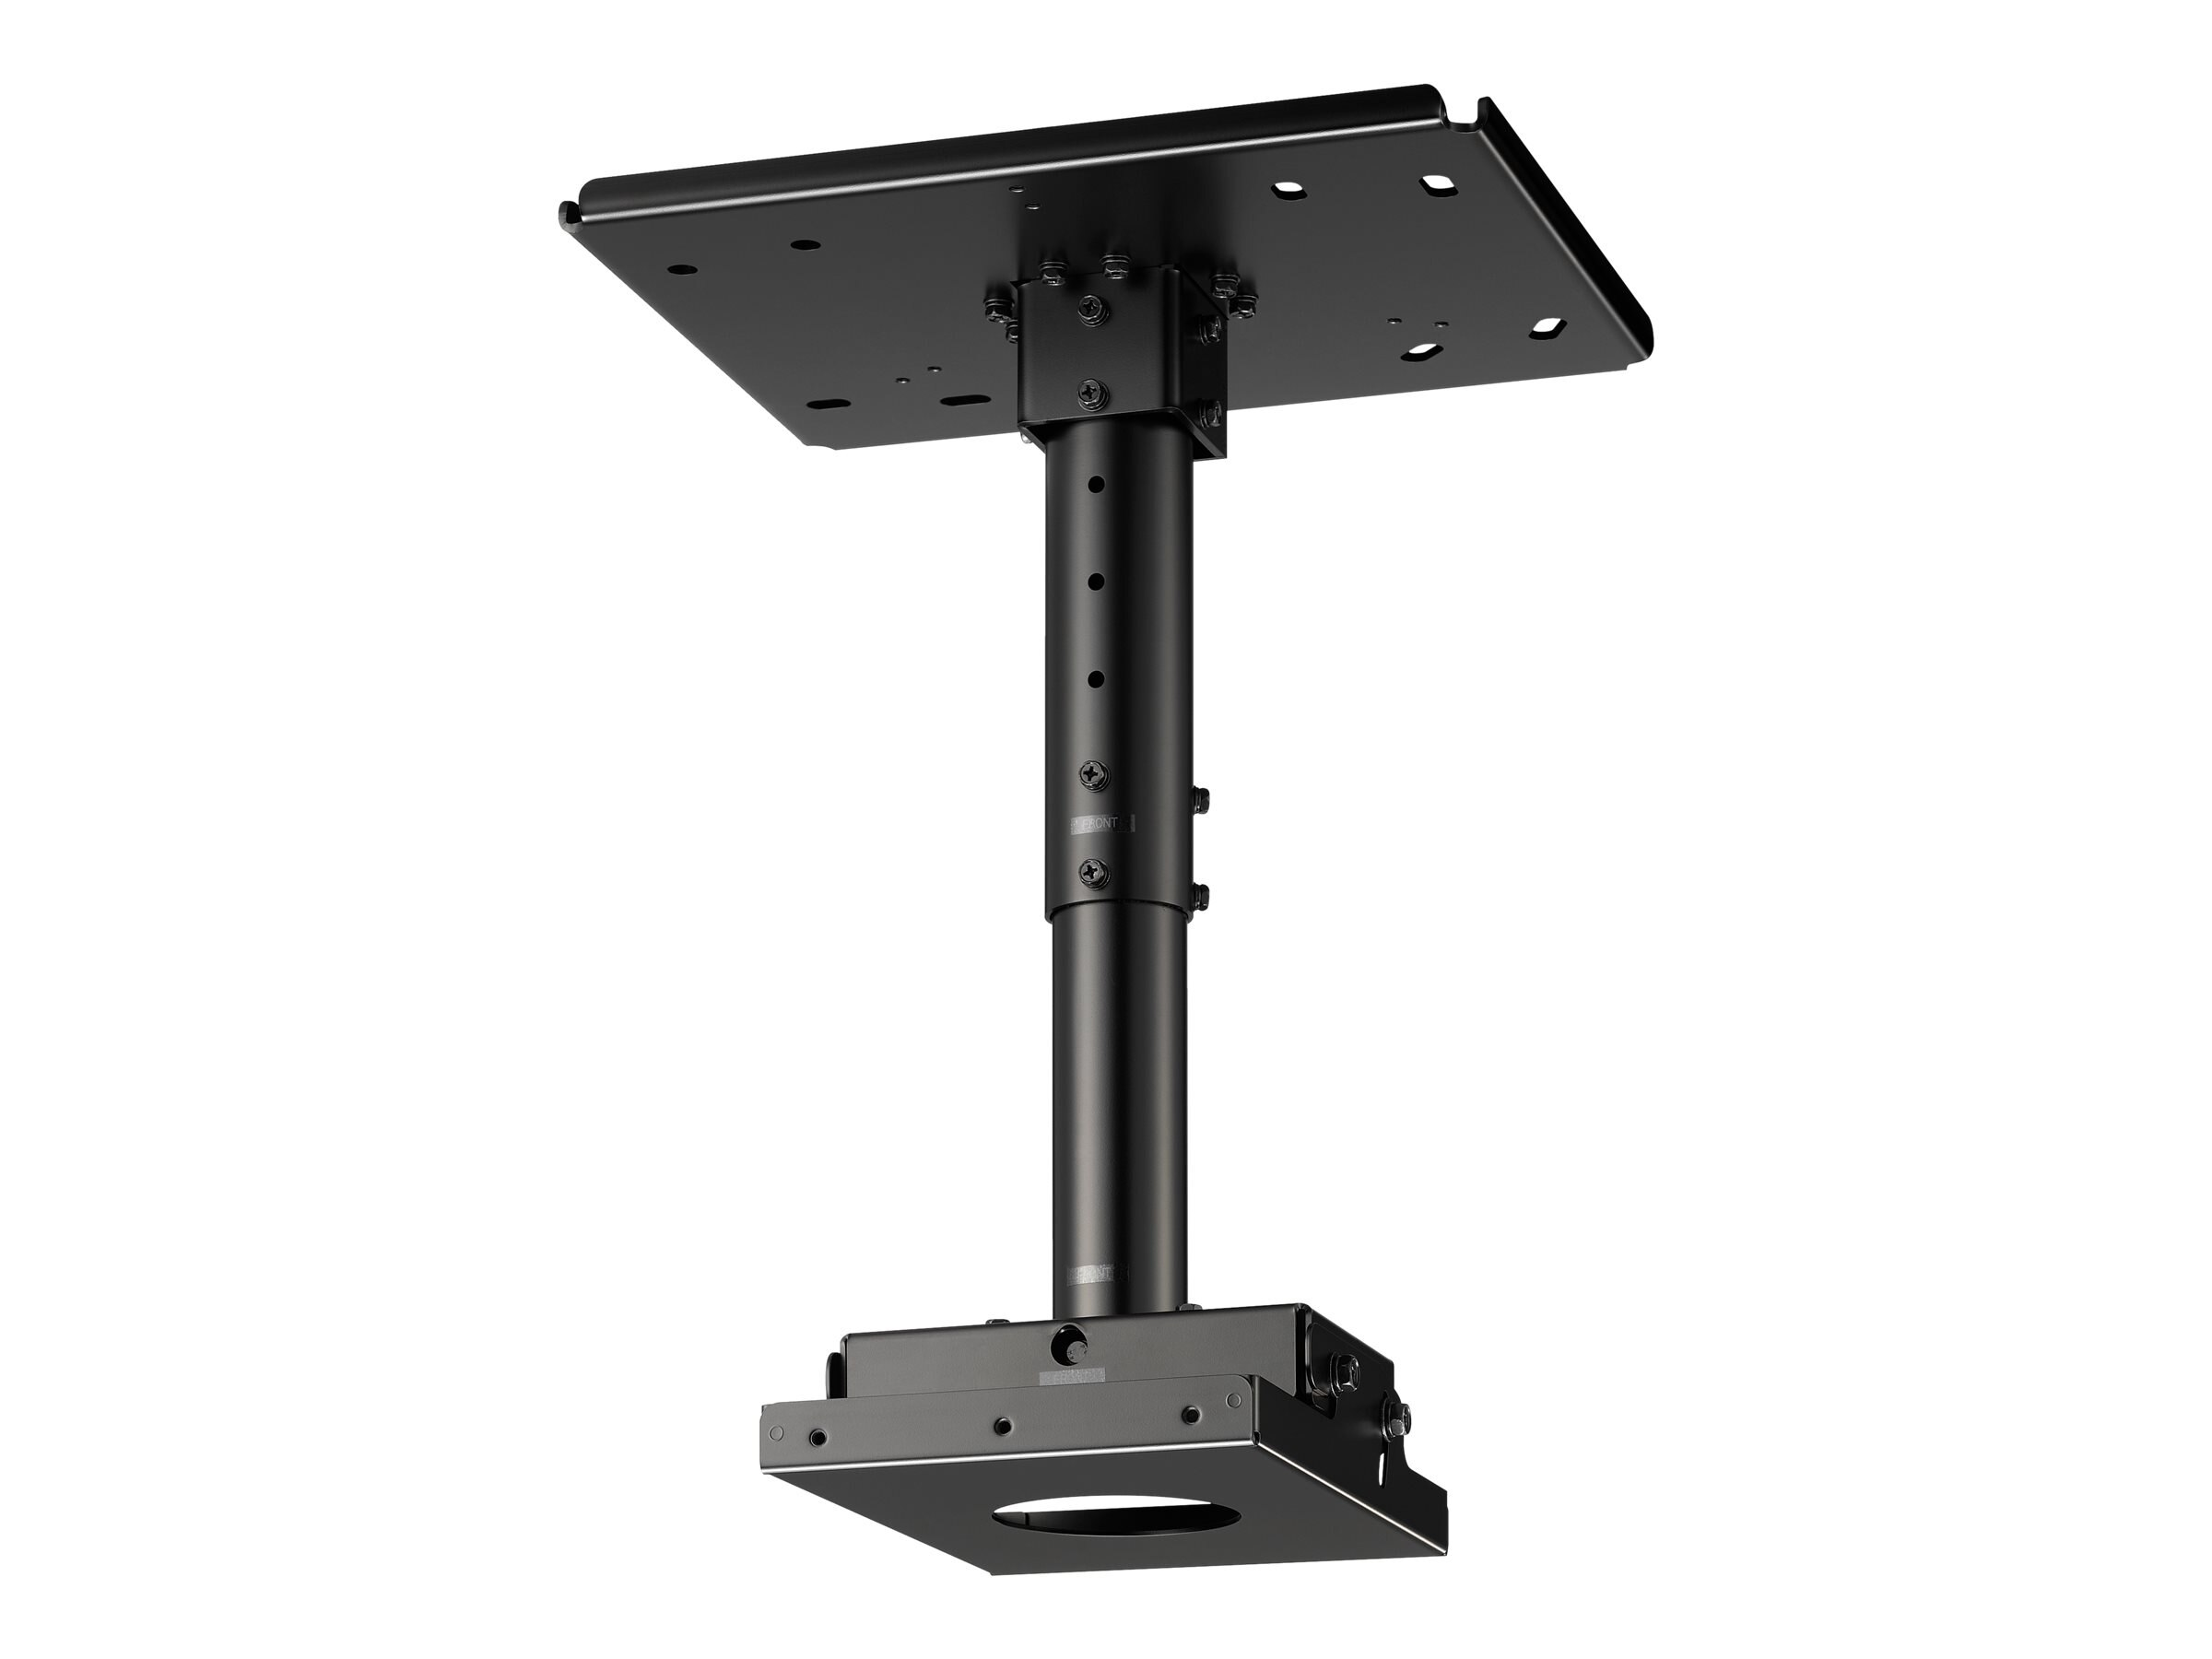 Panasonic High Ceiling Mount Bracket for PT-DZ21K2 Series